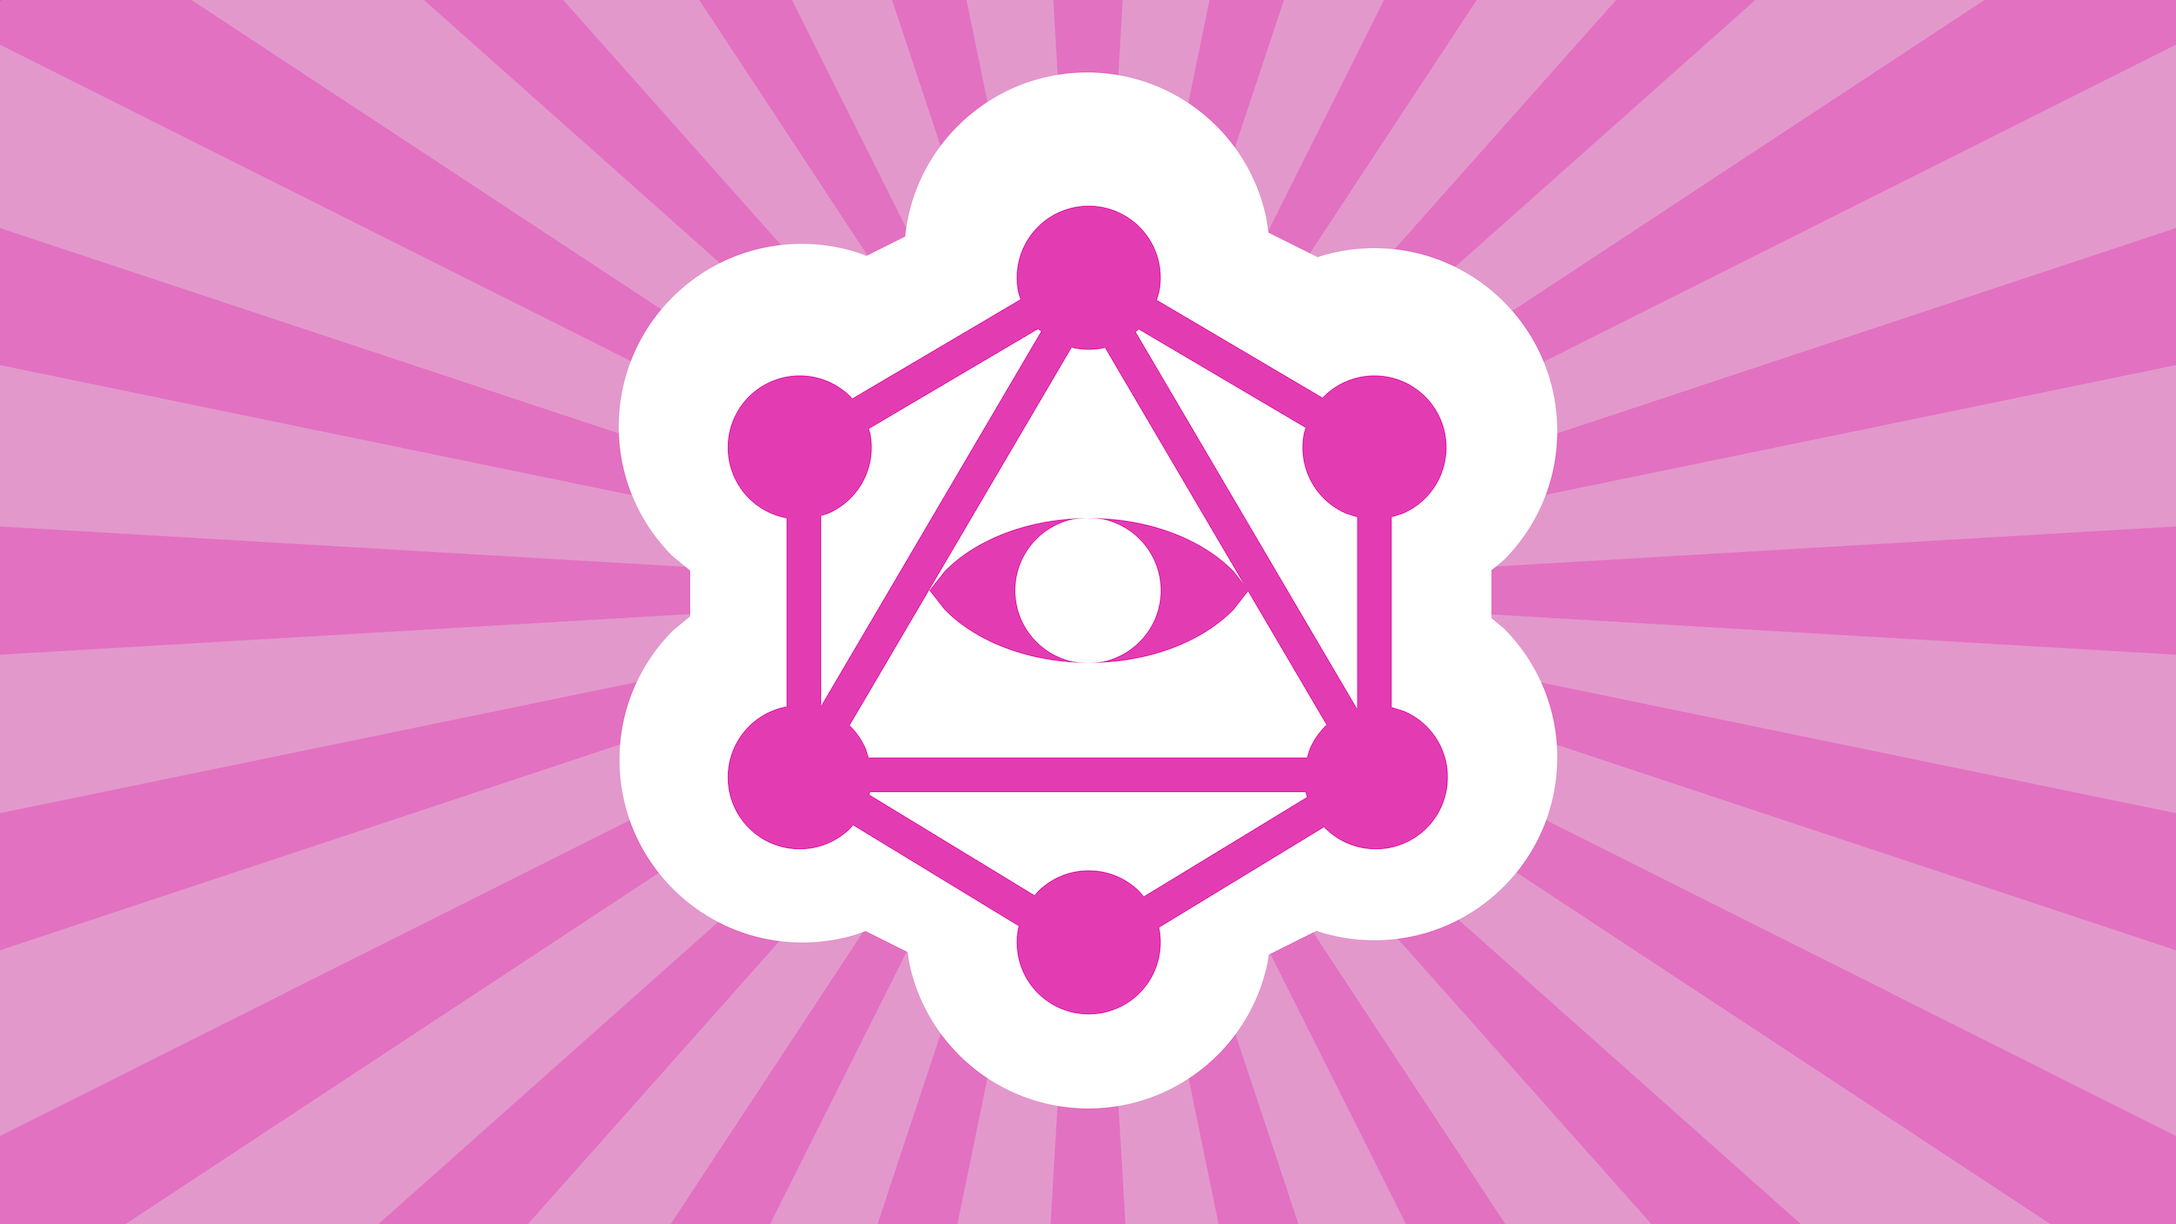 GraphQL logo with eye, surrounded by rays of light